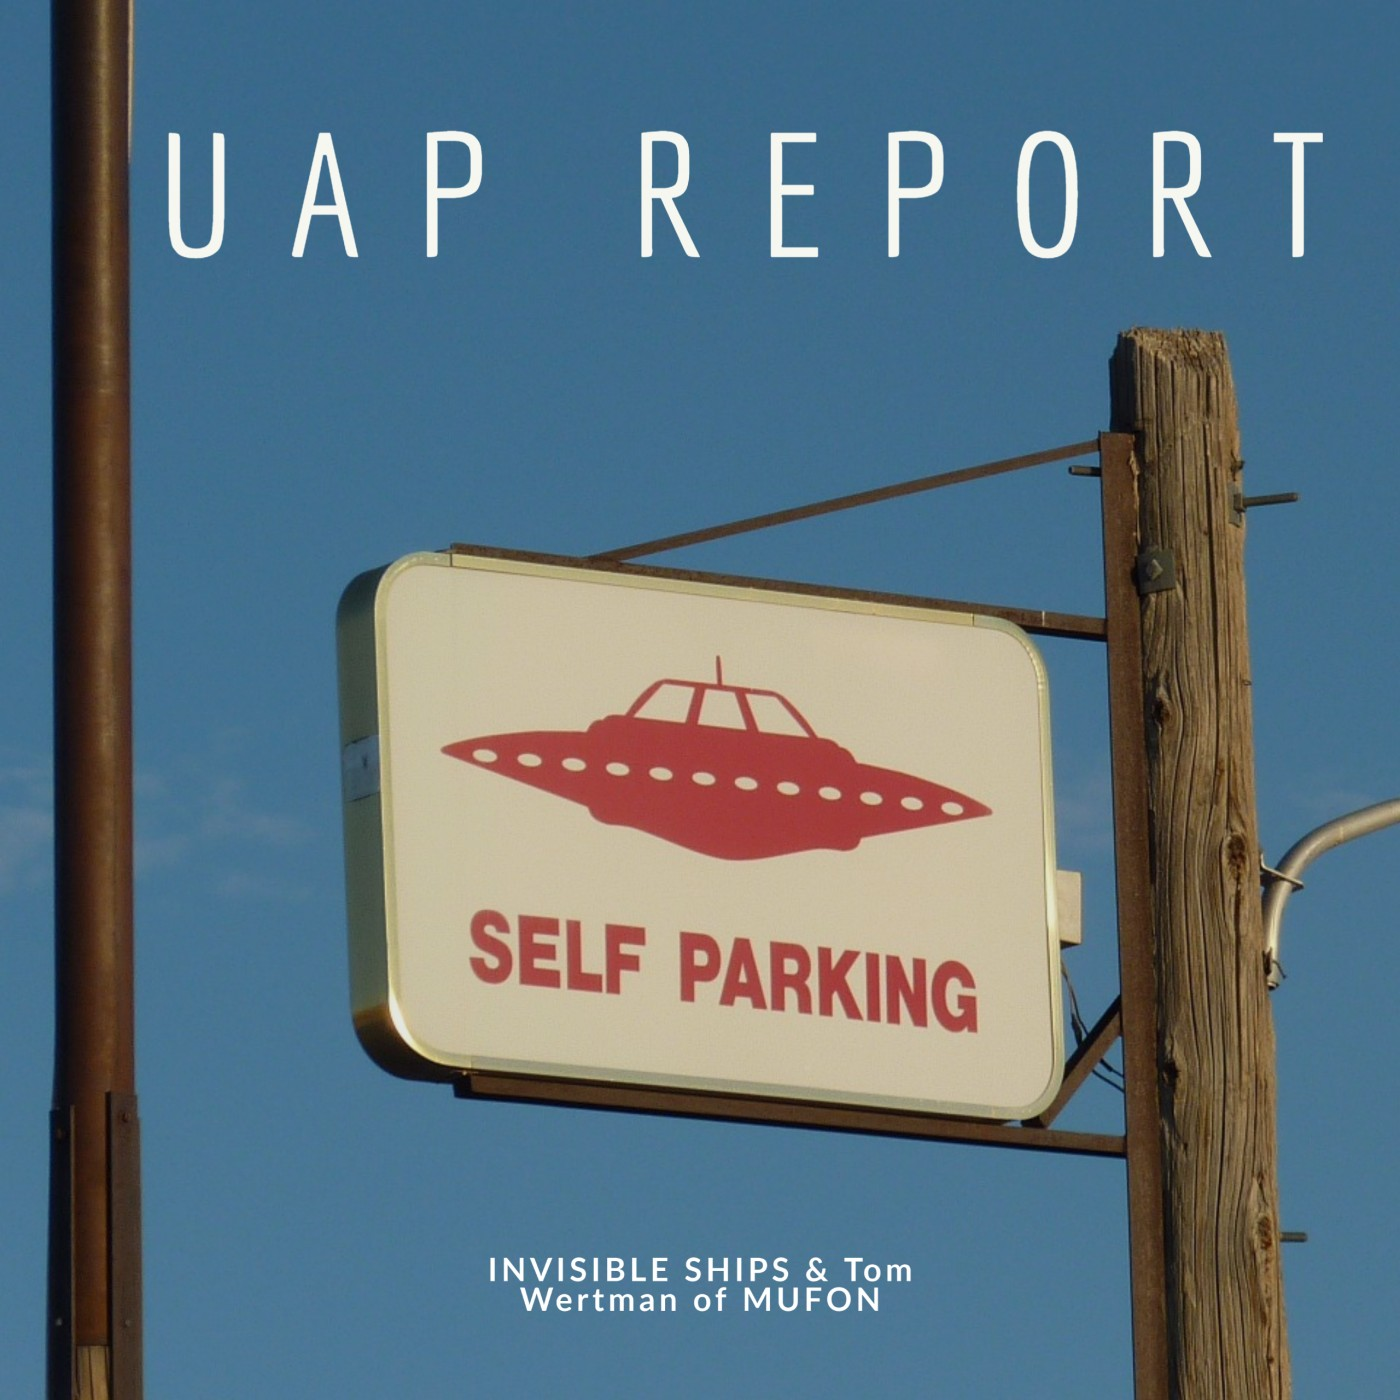 Look AT That UAP Report!